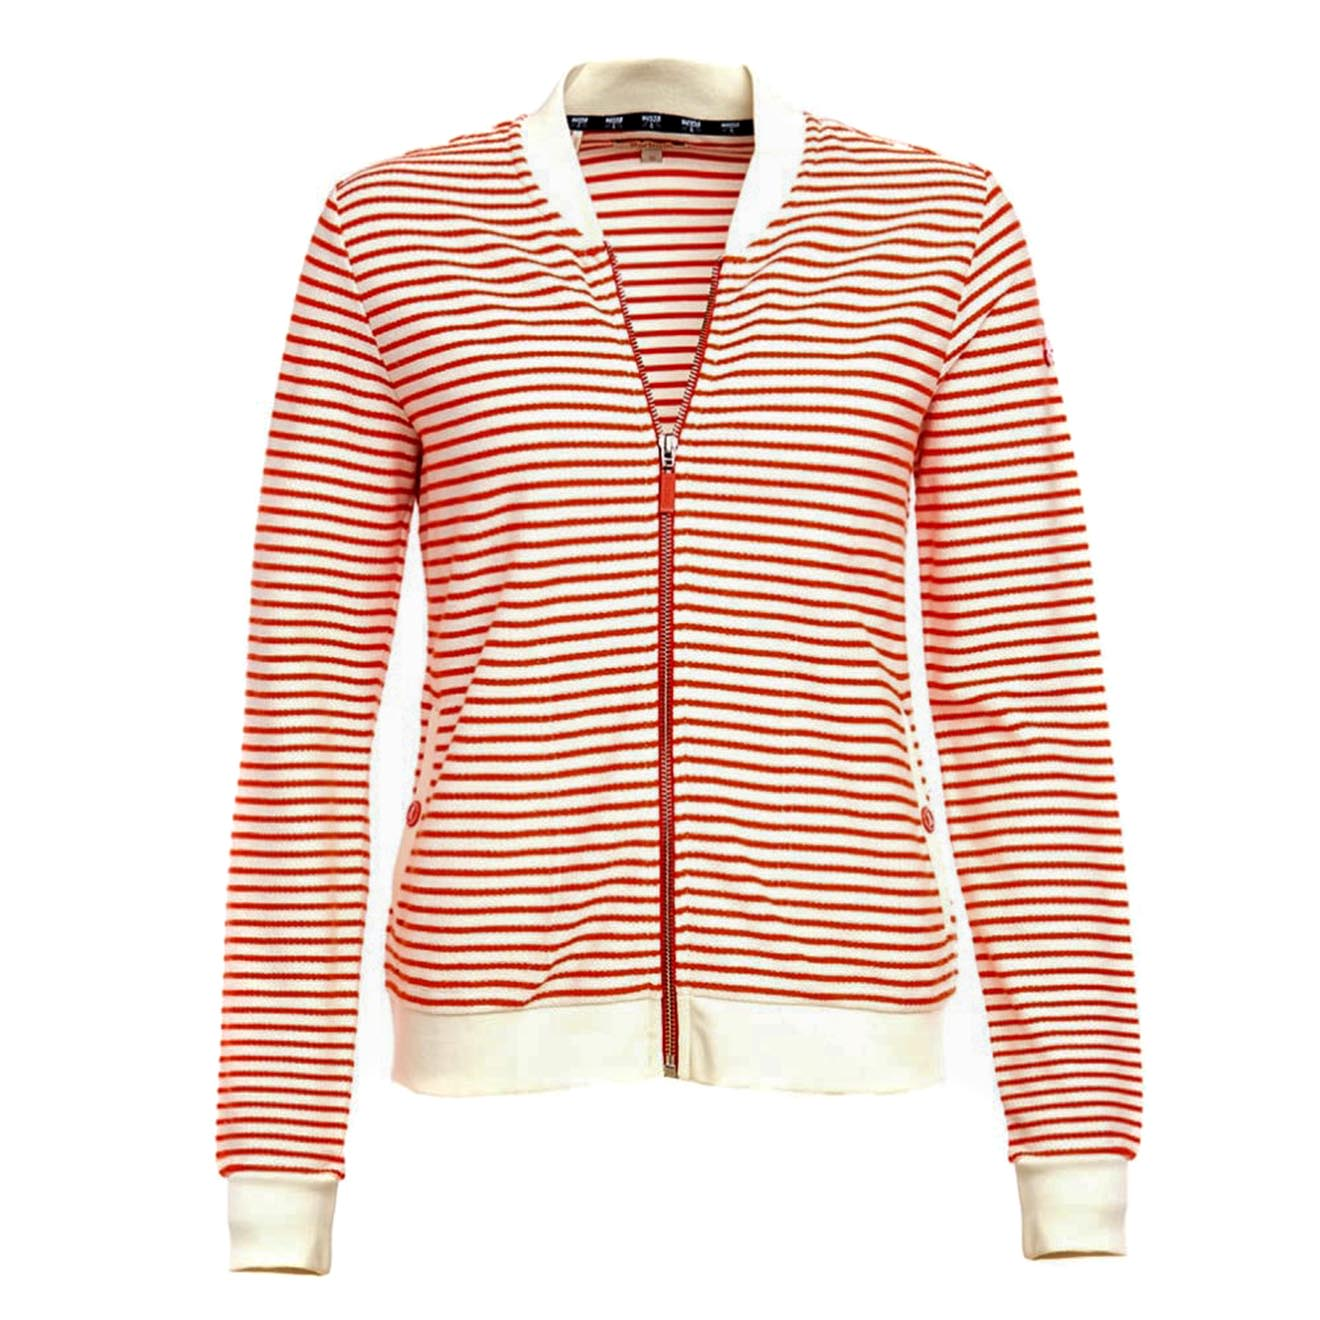 The Barbour Womens Banburgh Sweater offers a more sporty sweater in a bomber jacket shape made from a soft jersey cotton. It has an attractive striped design, with solid colour to contrast at the collar, hem and cuffs for a neat look. With softly ribbed hem and cuffs, this sweat is super comfortable to wear and gives a flattering appearance. The sweat features a full zip to the front, welt pockets and the iconic Barbour Beacon studs bring it back to its classic Barbour feel. Available in alternative colours.